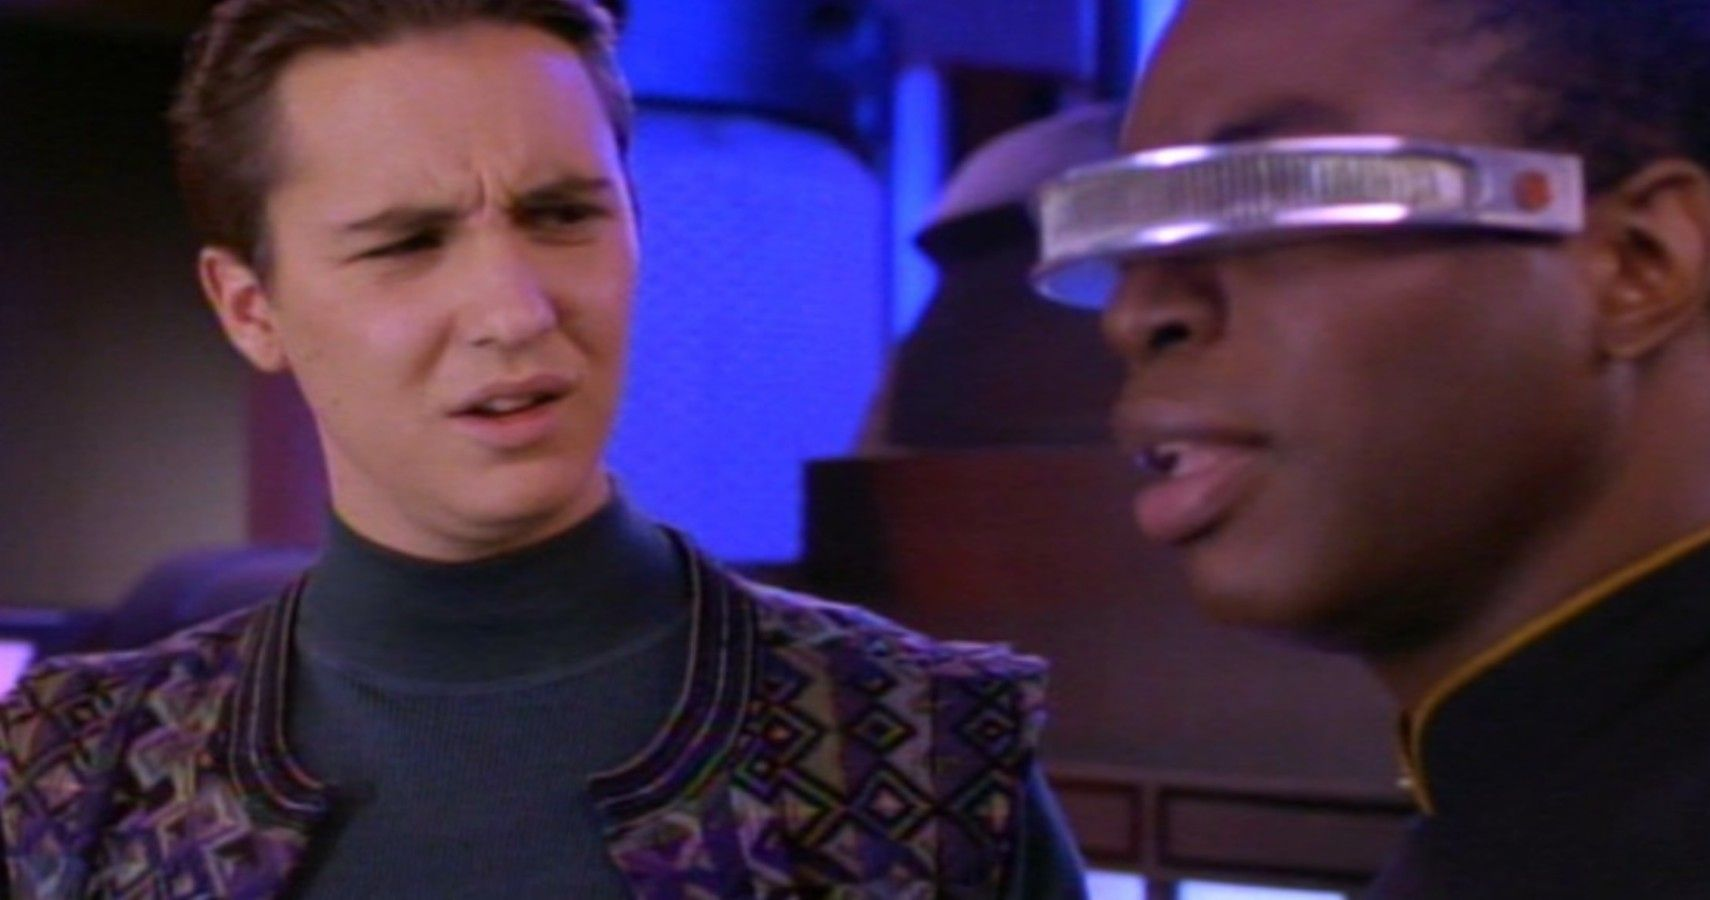 10 Things From The Original Star Trek TNG That Haven't Aged Well